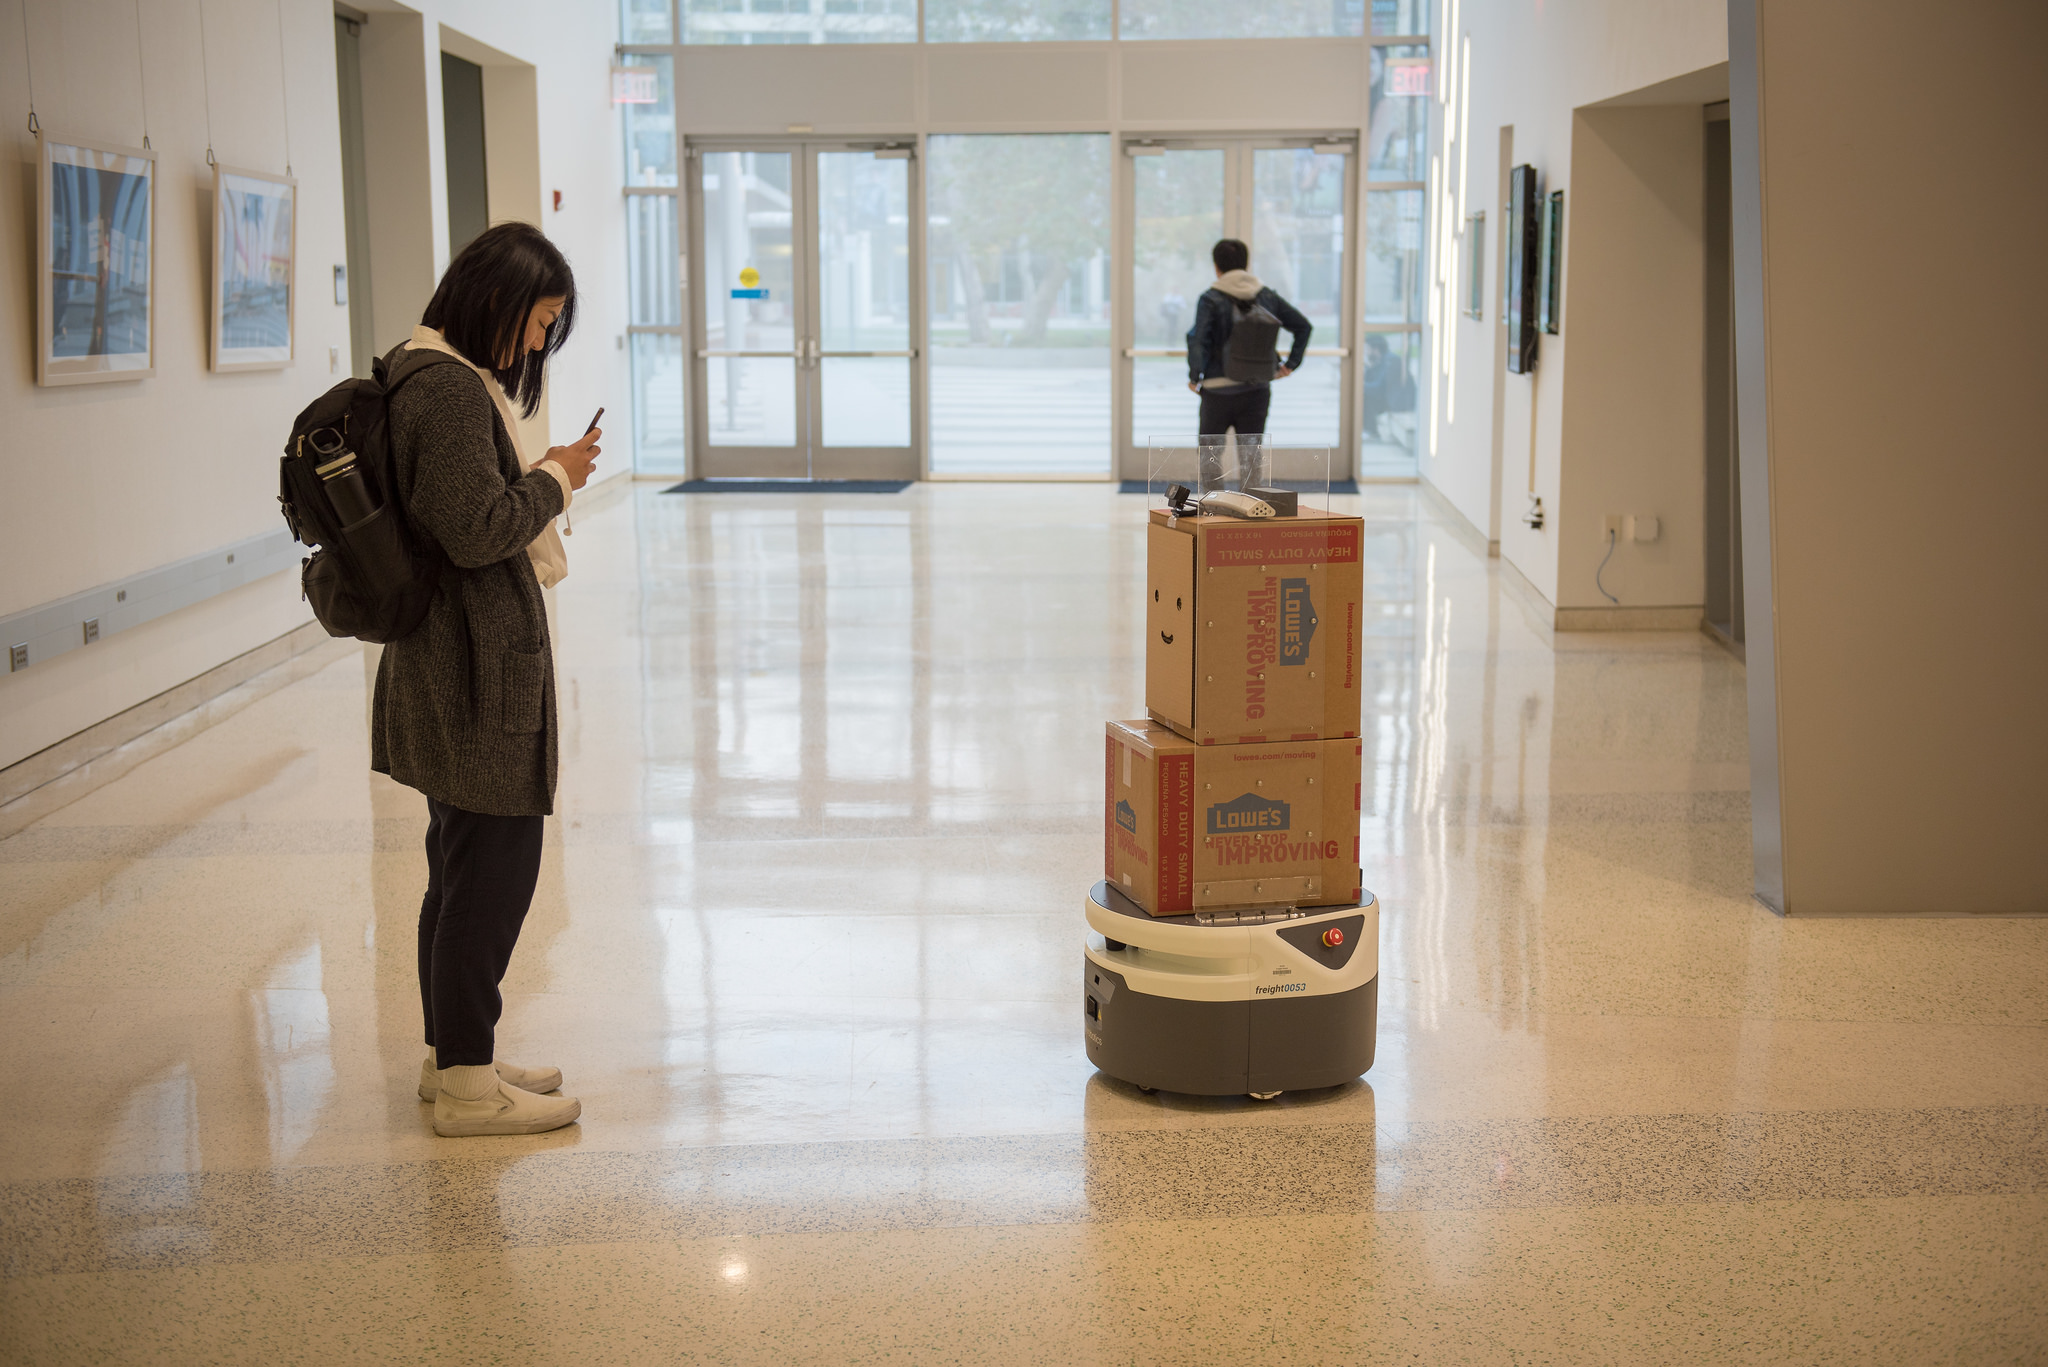 A student interacts with BoxBot